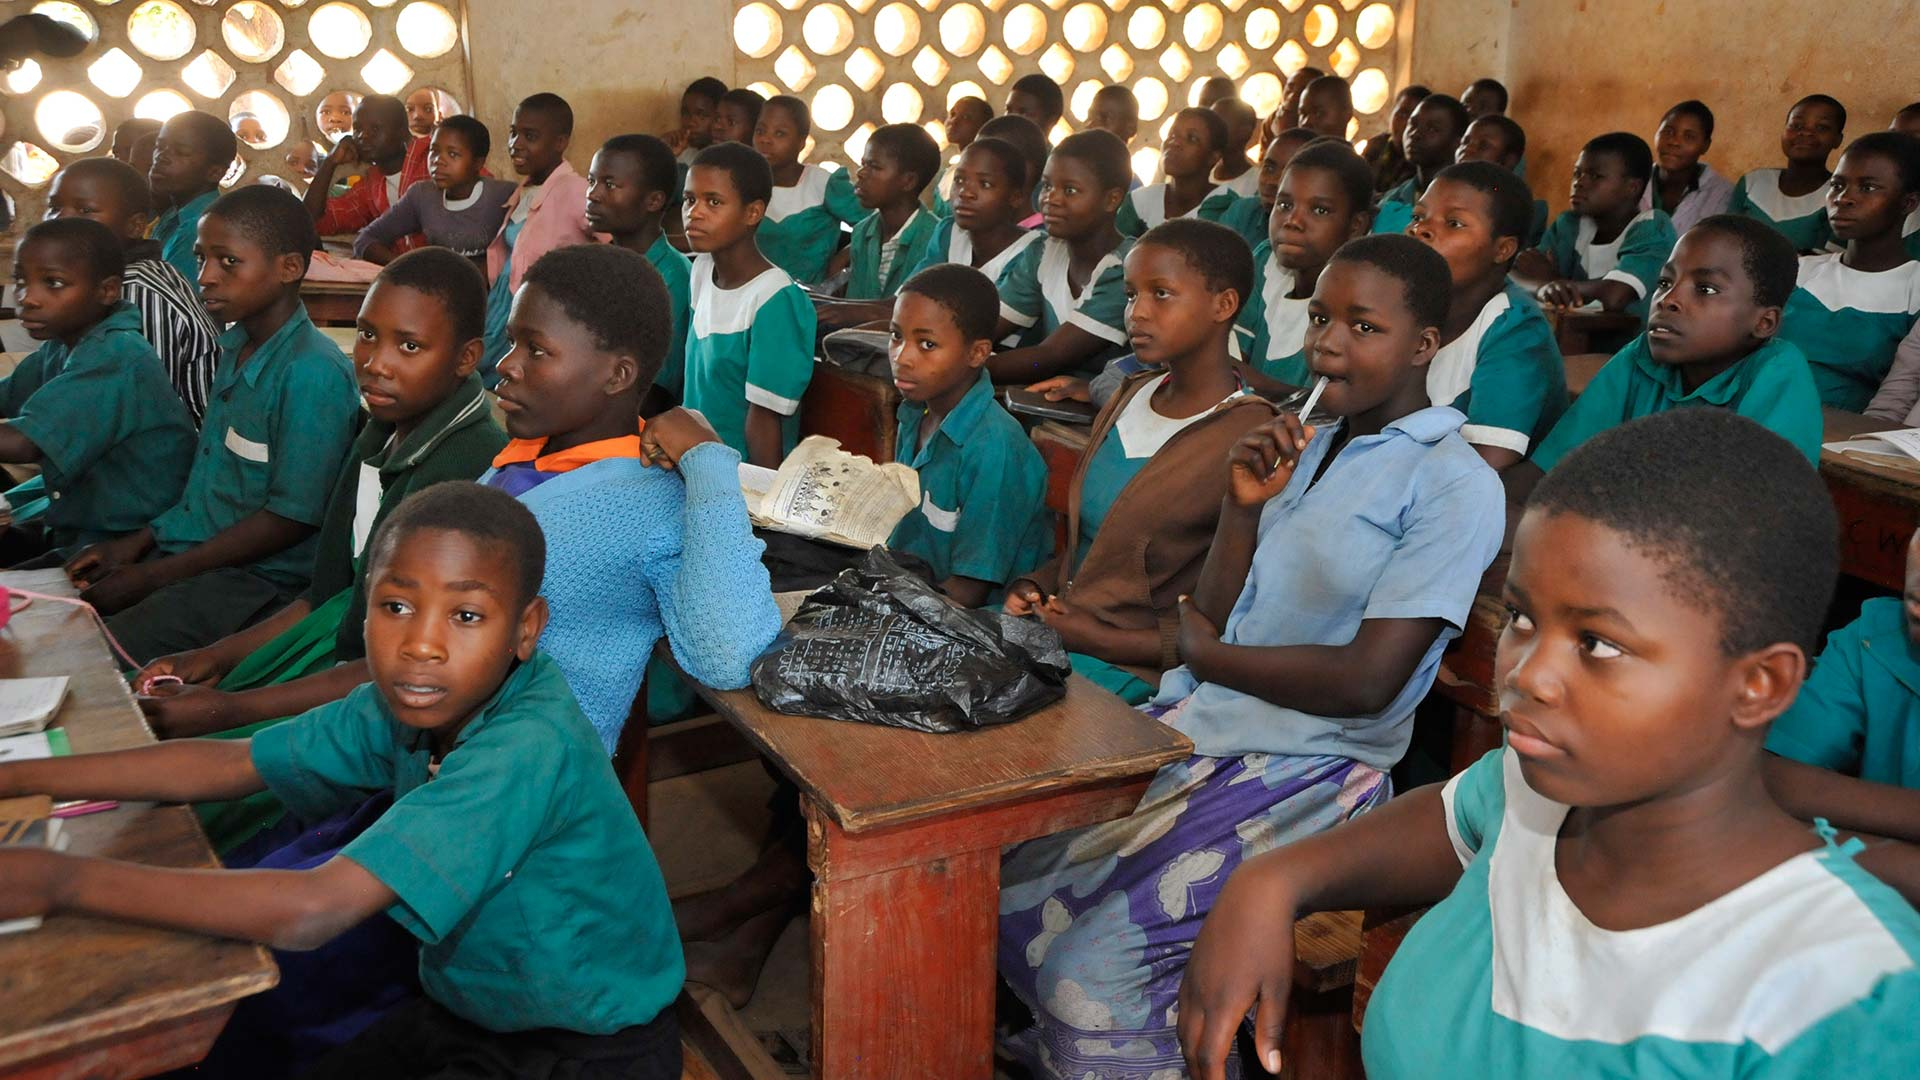 Classroom full of Malawian school children at their desks